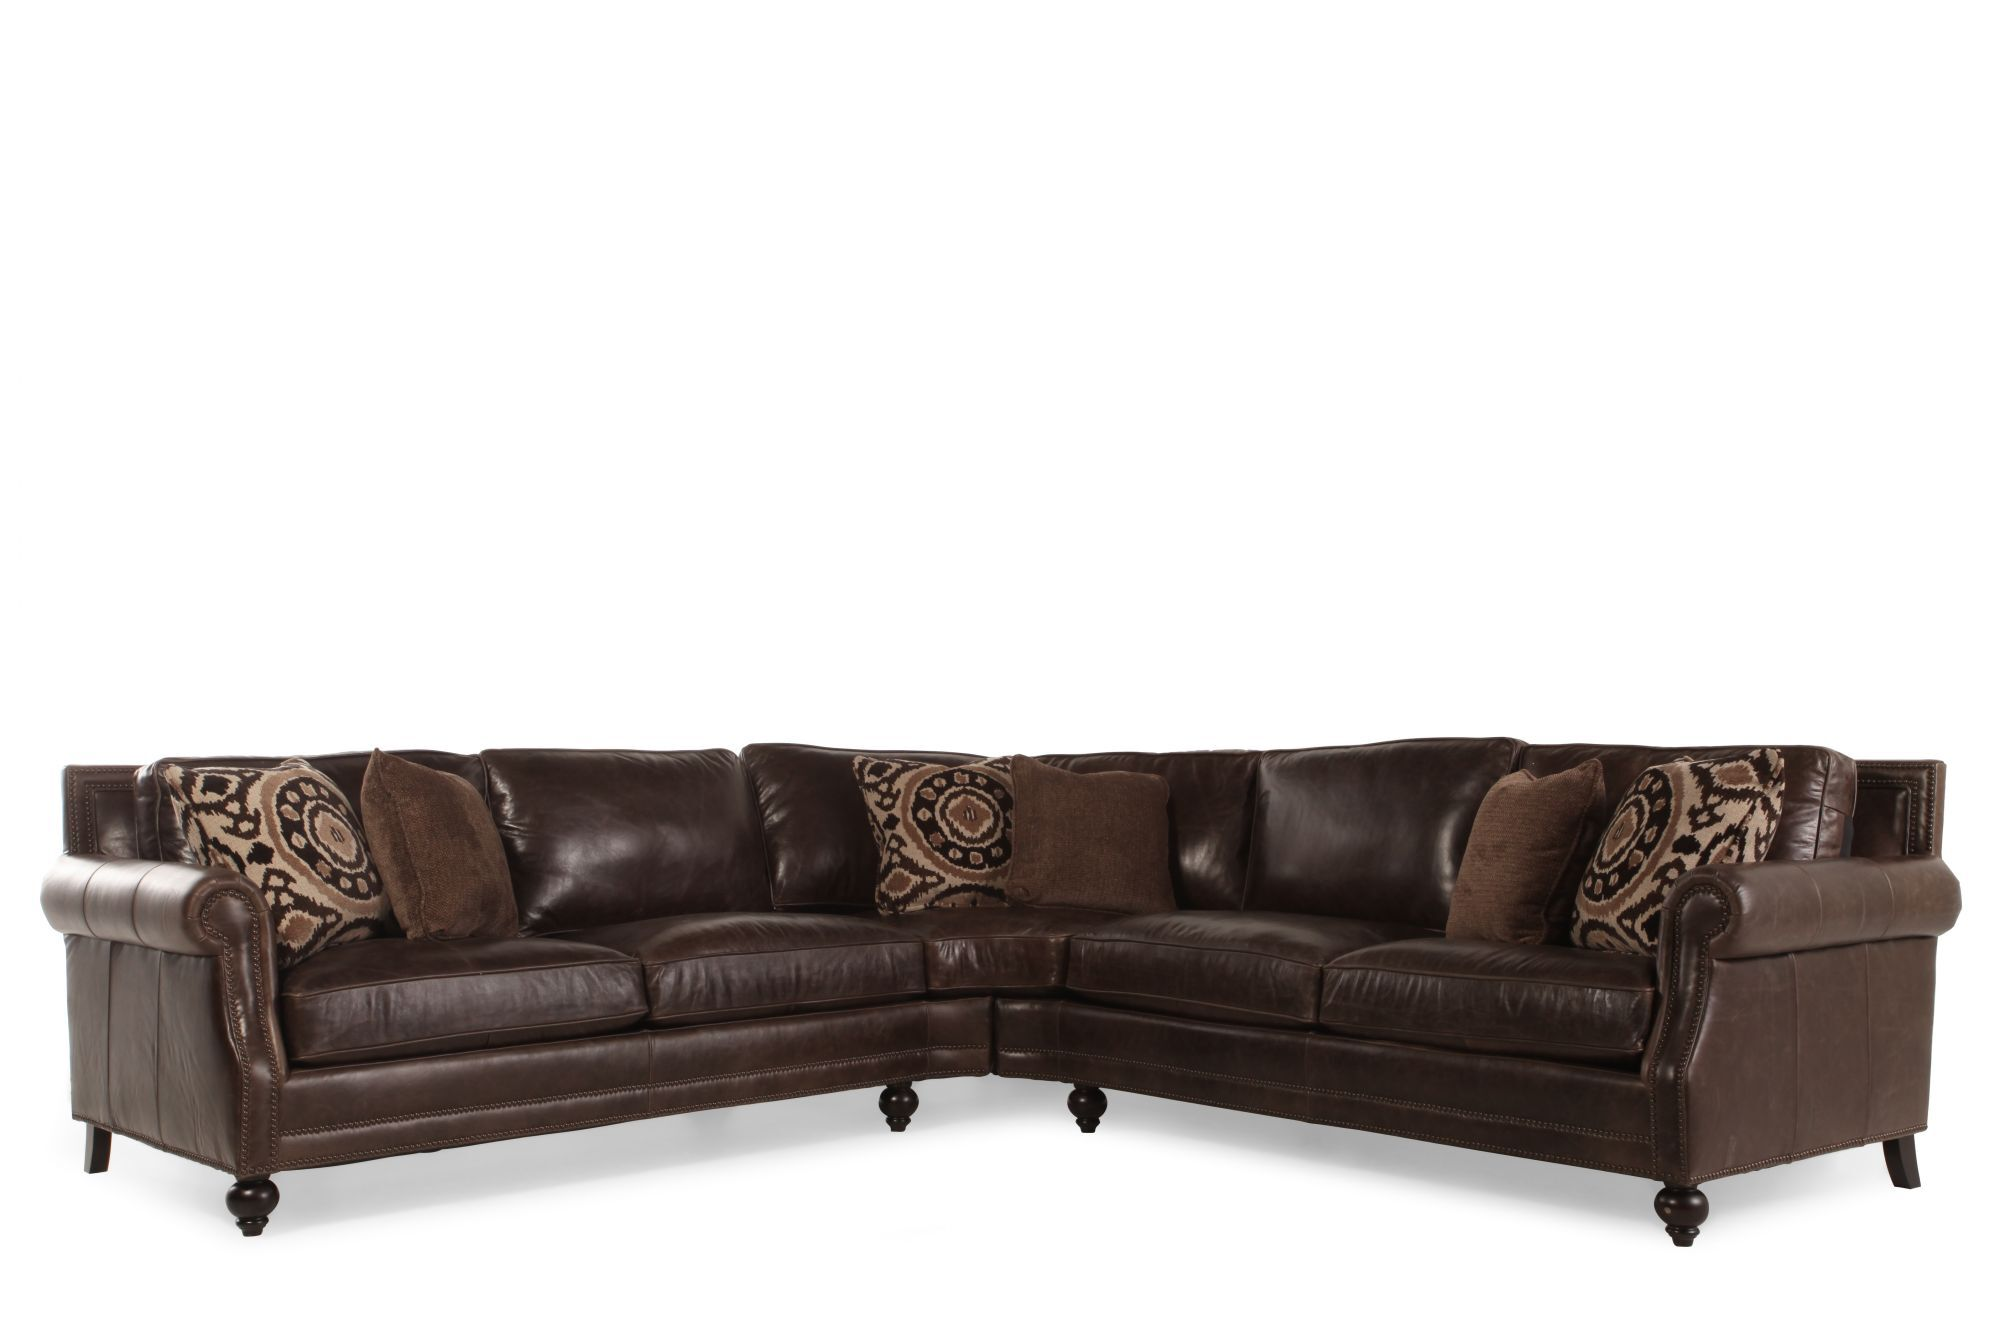 Bernhardt Brae Two-Piece Leather Sectional  sc 1 st  Mathis Brothers : bernhardt foster sectional - Sectionals, Sofas & Couches